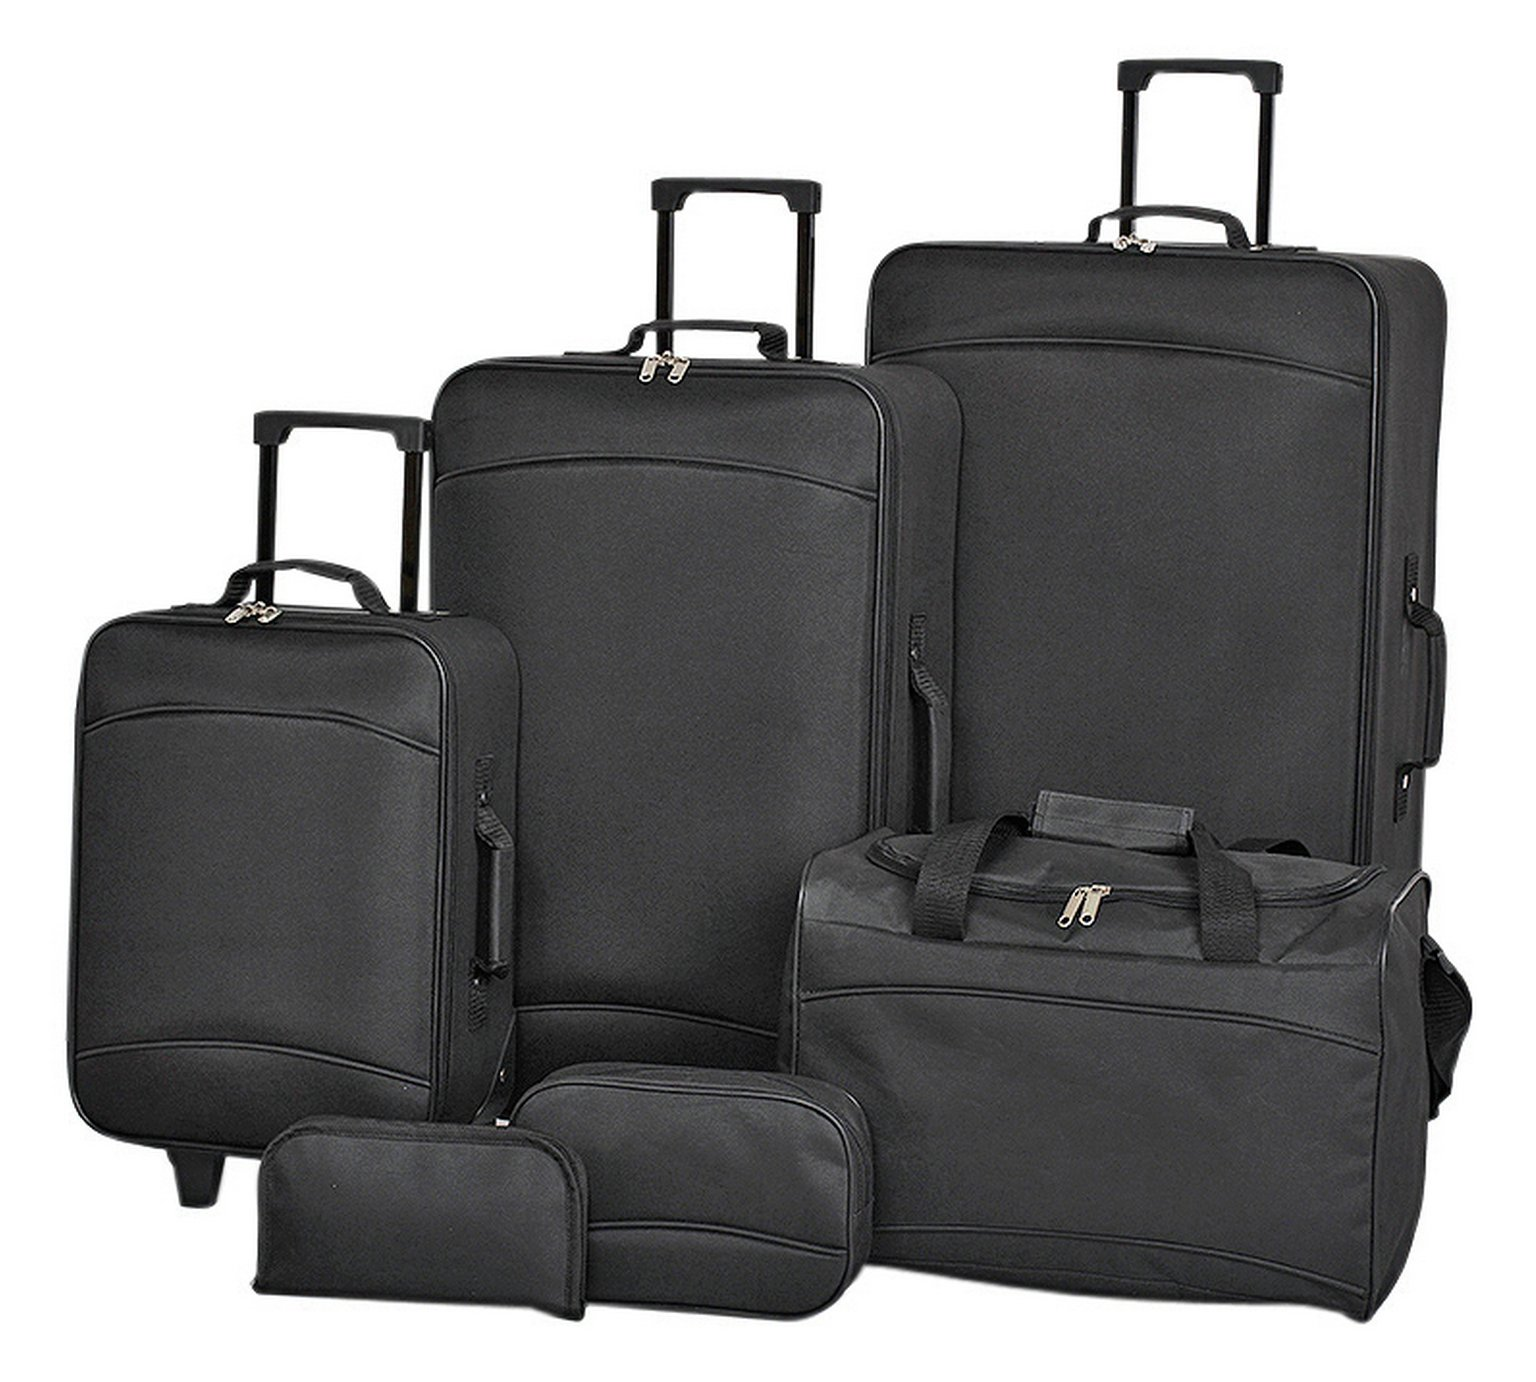 Simple Value 6 piece Luggage Set by Simple Value by Argos 527/2046